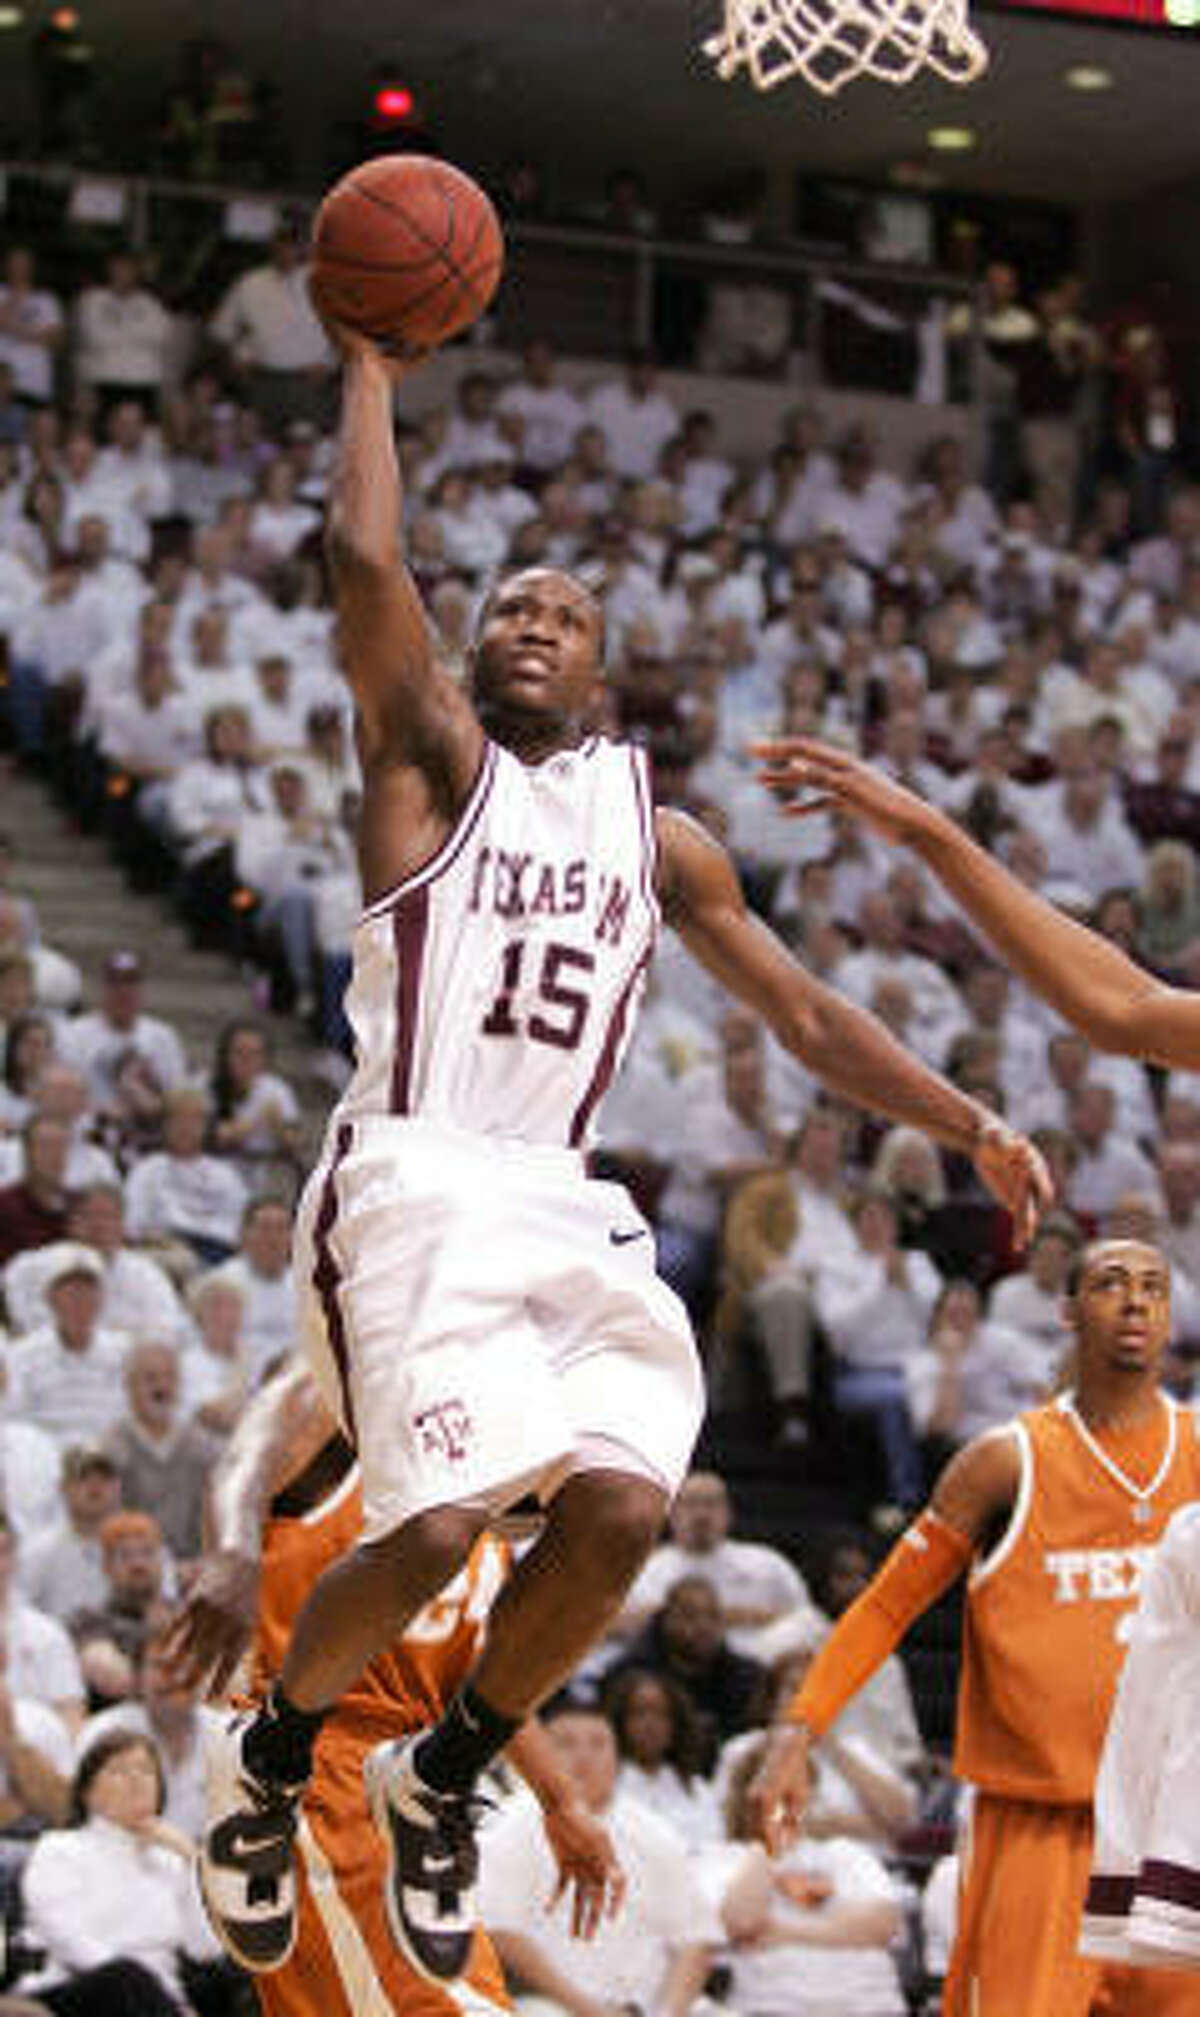 Guard Donald Sloan and Texas A&M (14-1) look to conference play to prove the strength of the team.